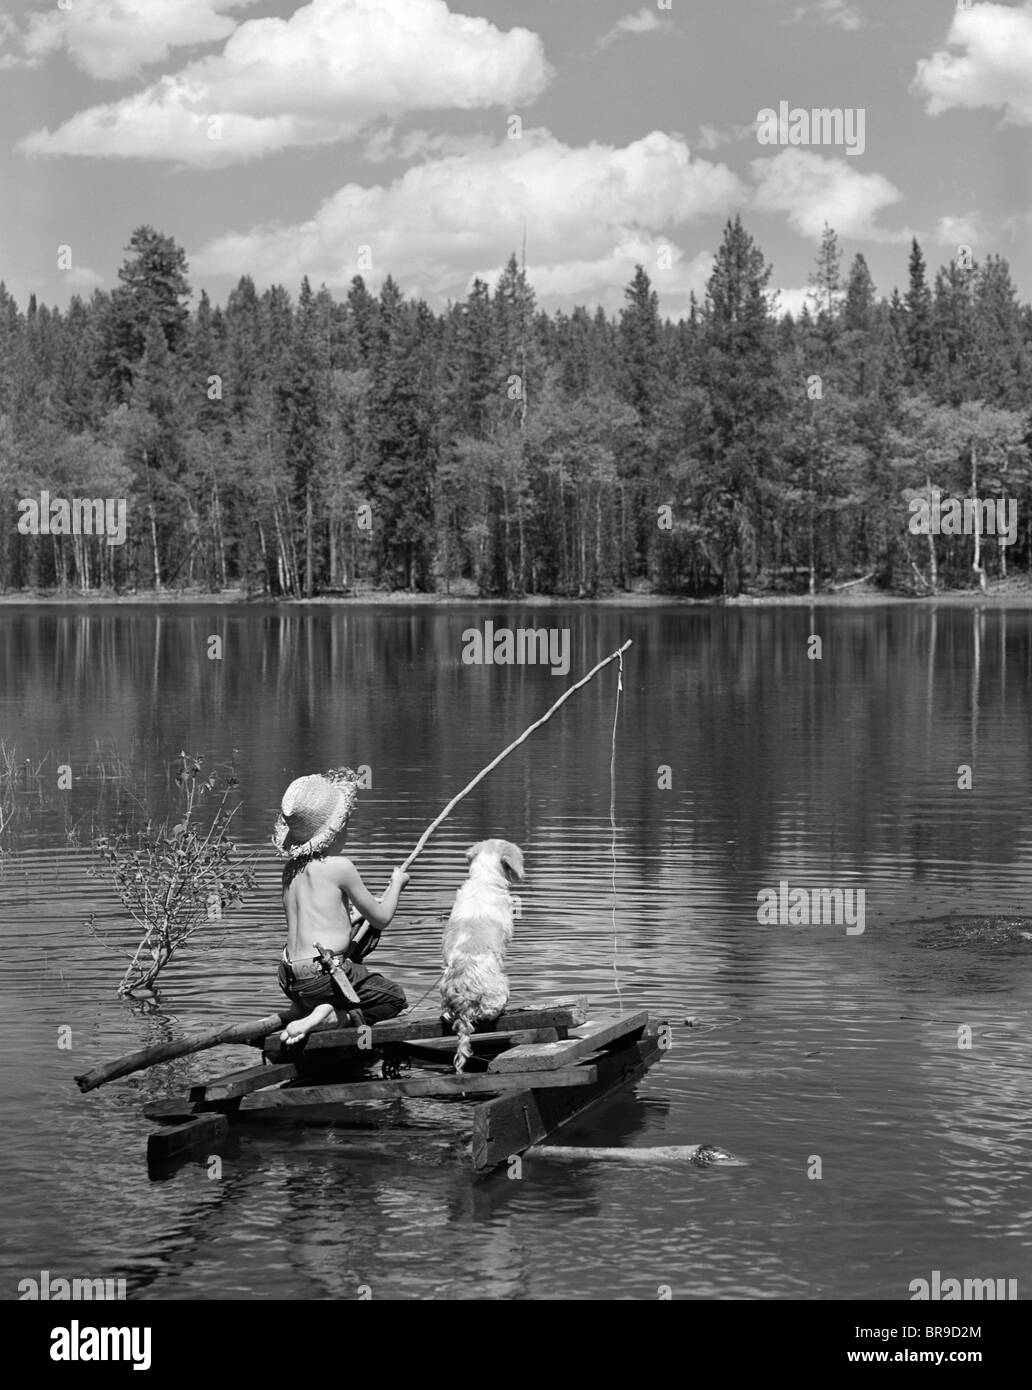 1950s BOY HUCK FINN STYLE ON HOMEMADE RAFT WITH DOG FISHING IN LAKE Stock Photo, Royalty Free ...